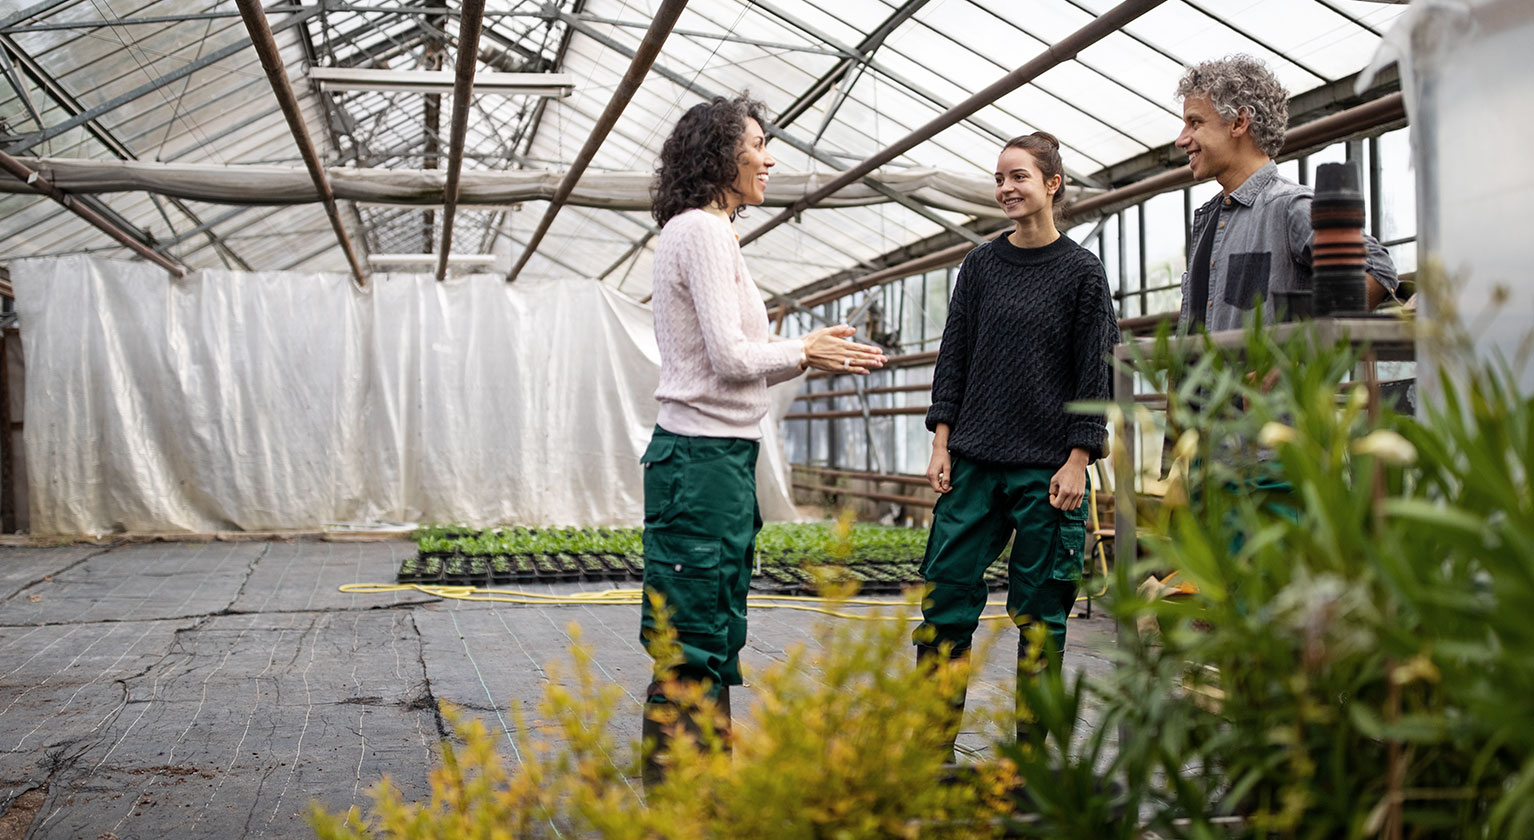 3 people talking in a garden nursery